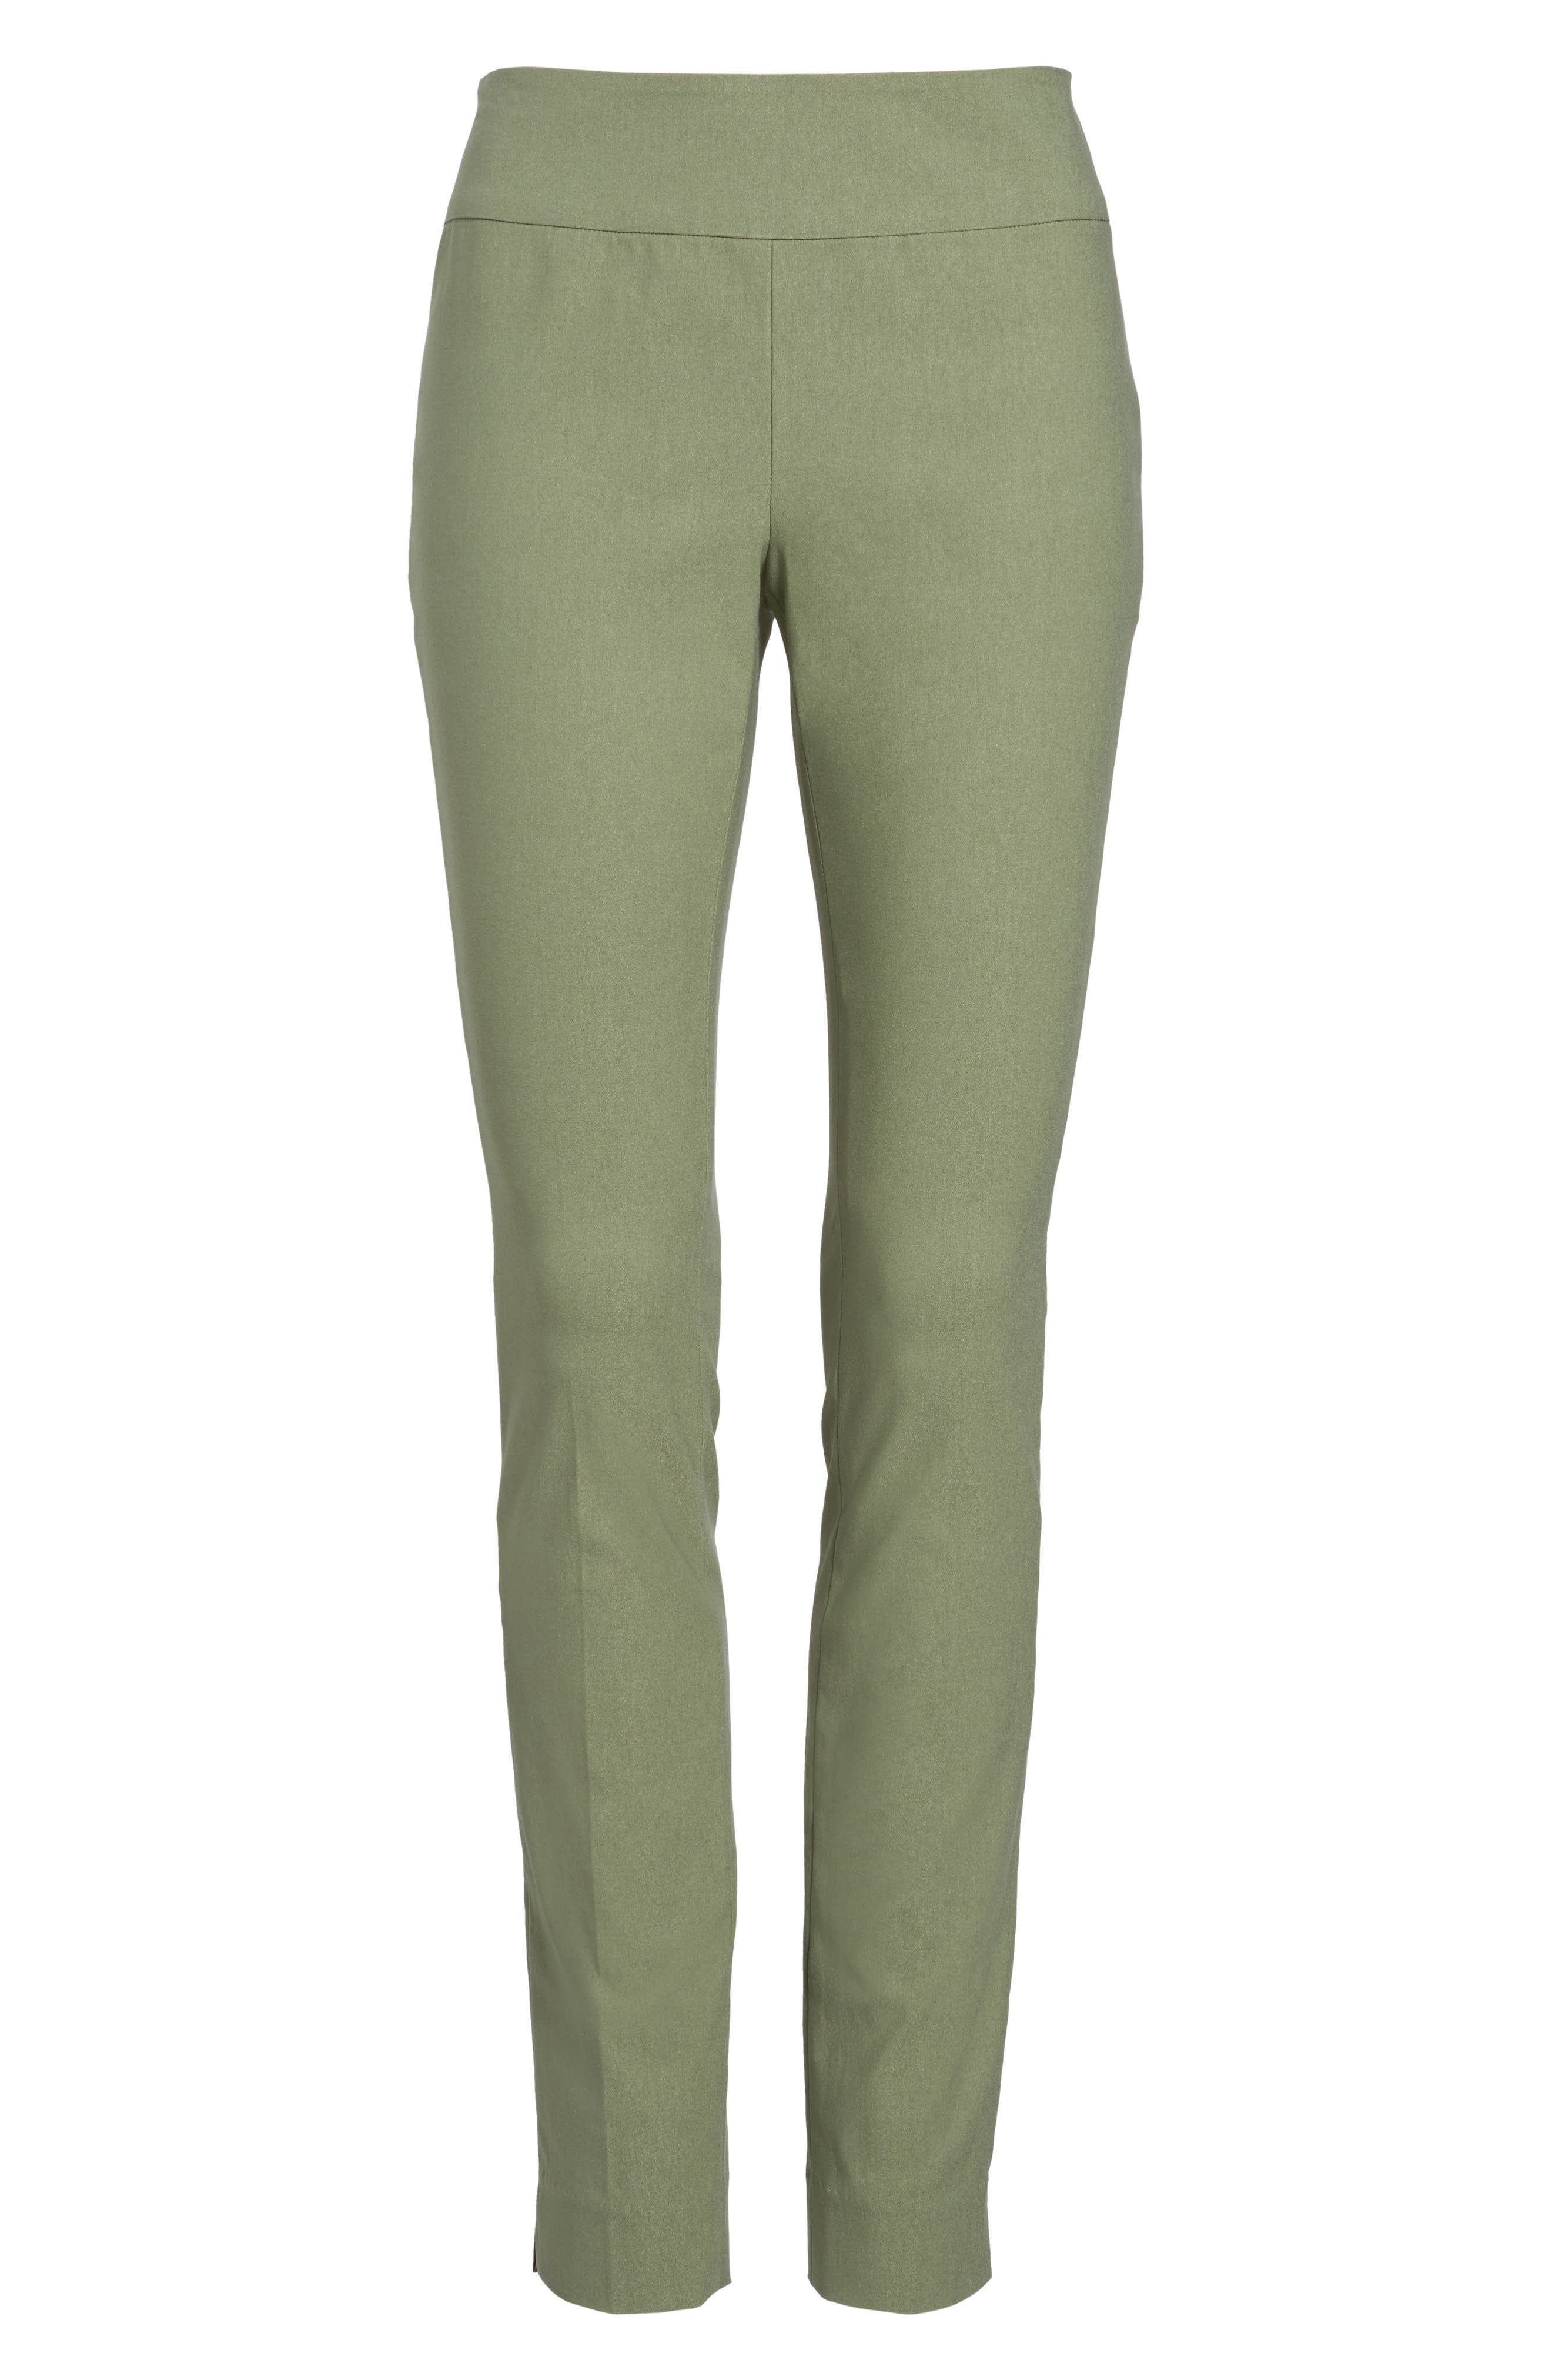 NIC + ZOE Wonderstretch Slim Pants,                             Alternate thumbnail 7, color,                             Spring Moss